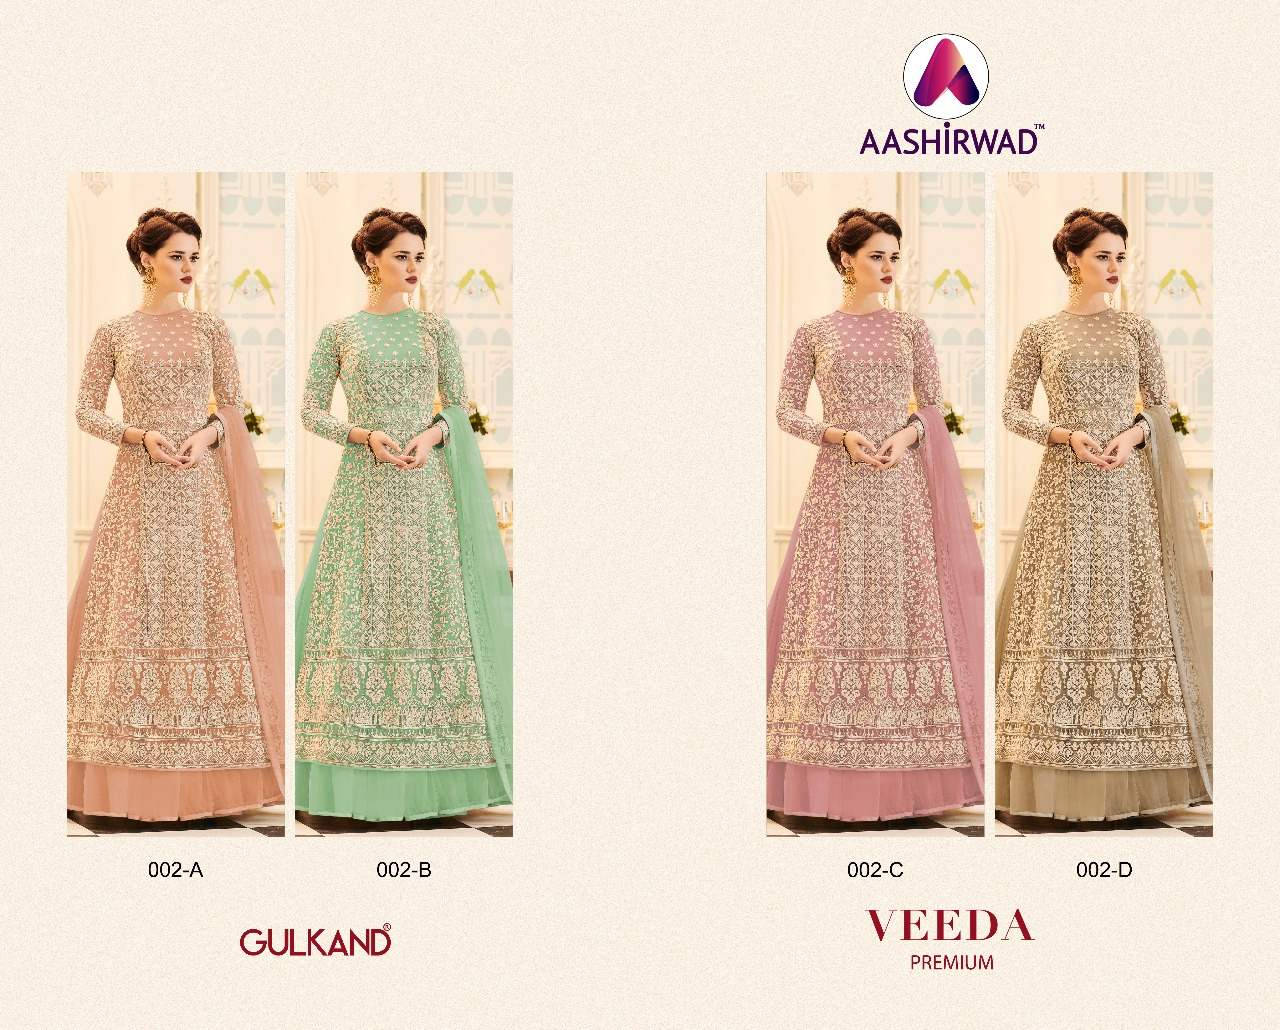 Aashirwad Veeda Premium collection 4